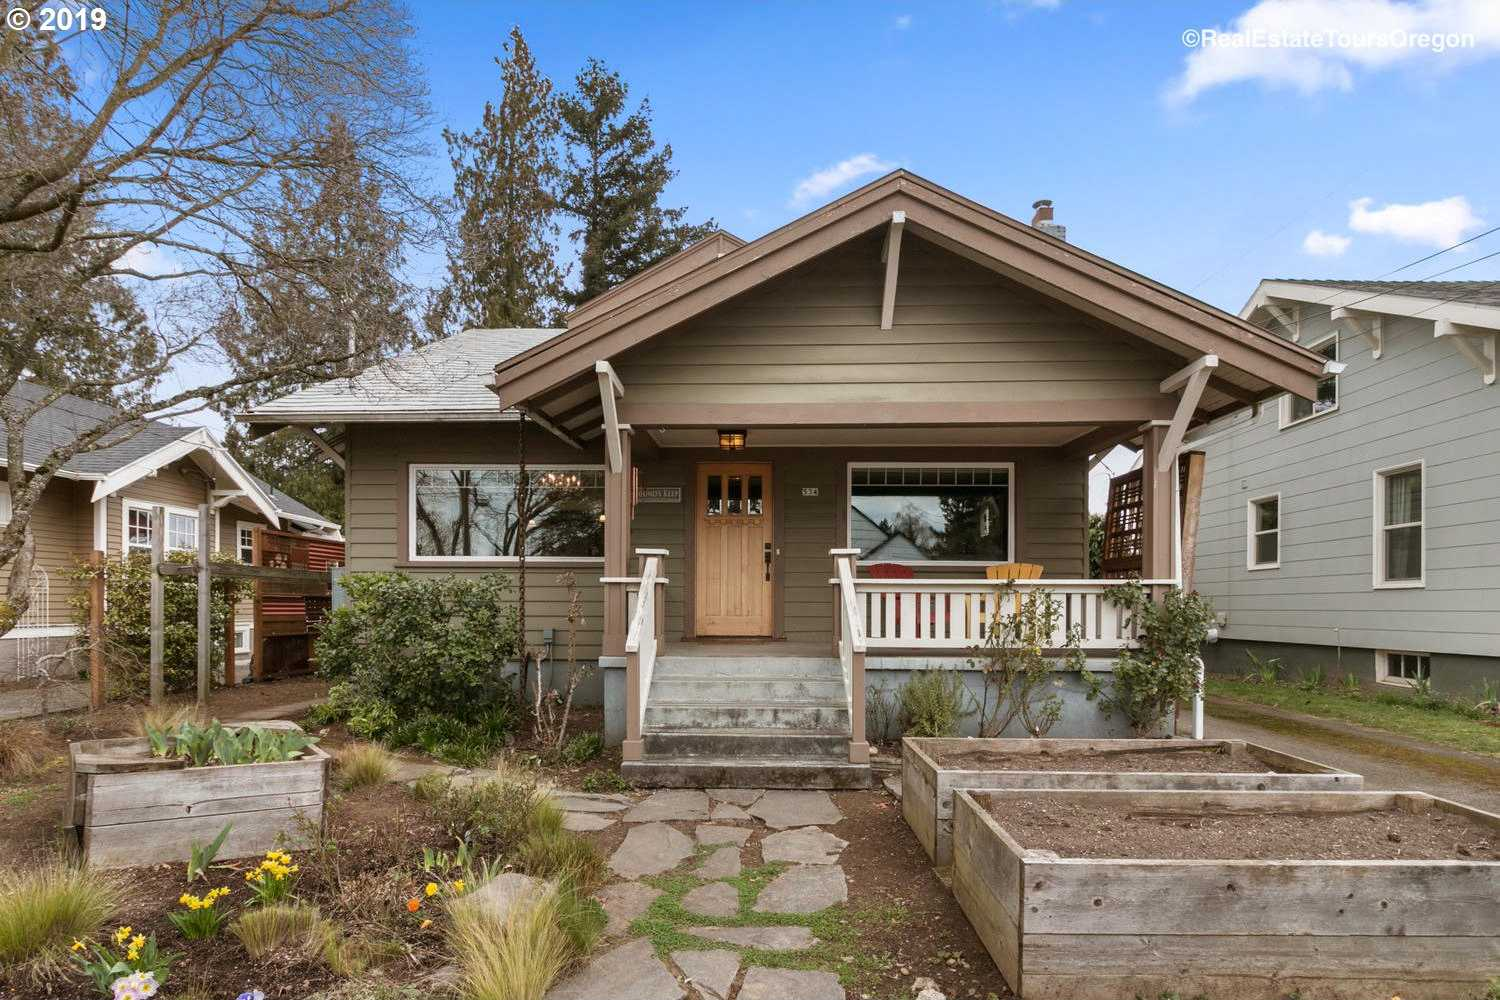 $525,000 - 4Br/3Ba -  for Sale in Portland